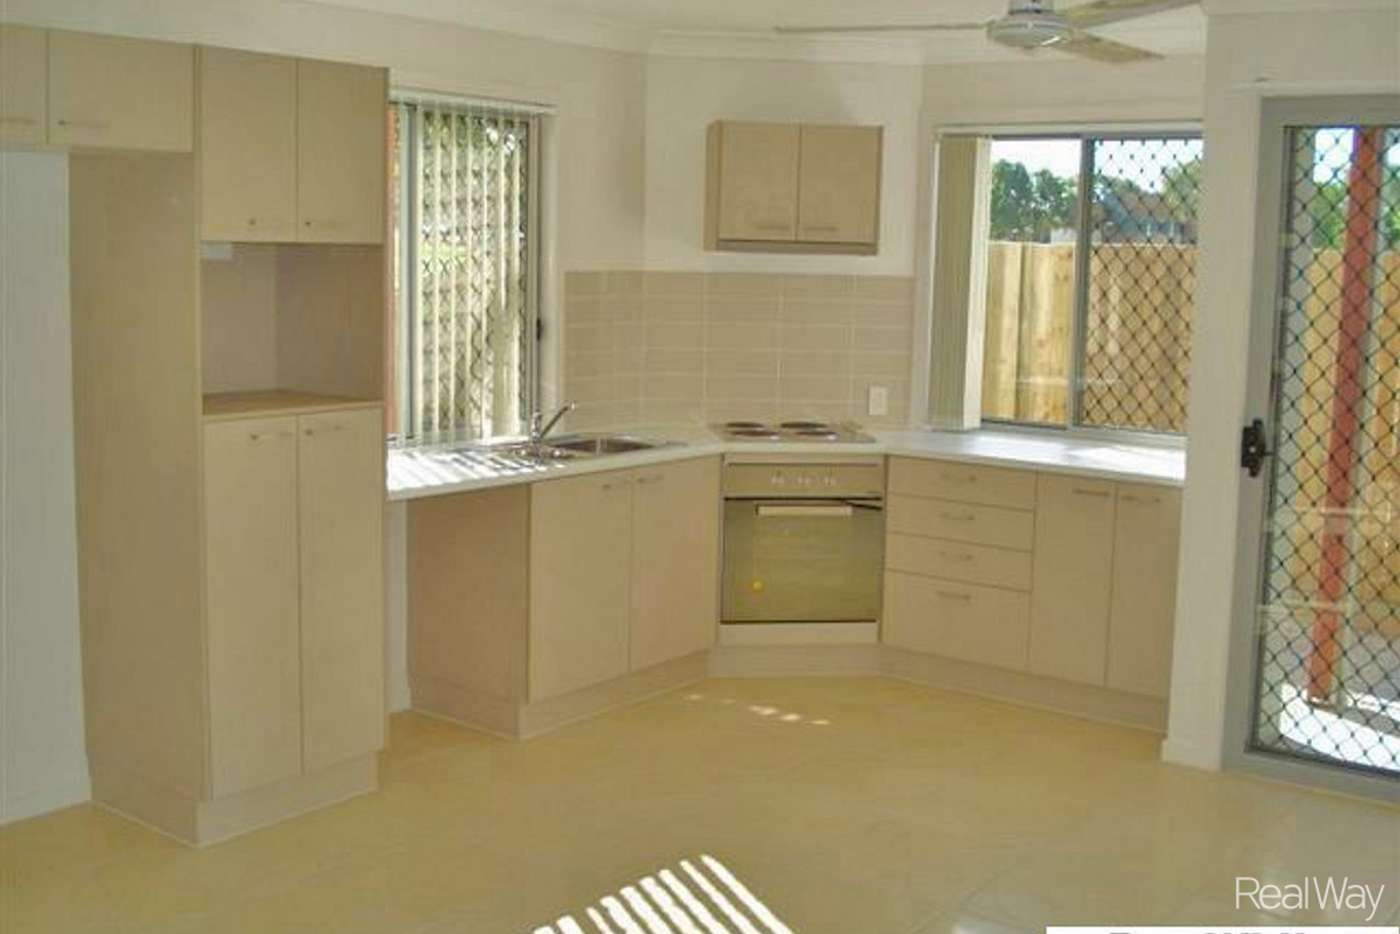 Fifth view of Homely townhouse listing, 12/16 David Street, Burpengary QLD 4505